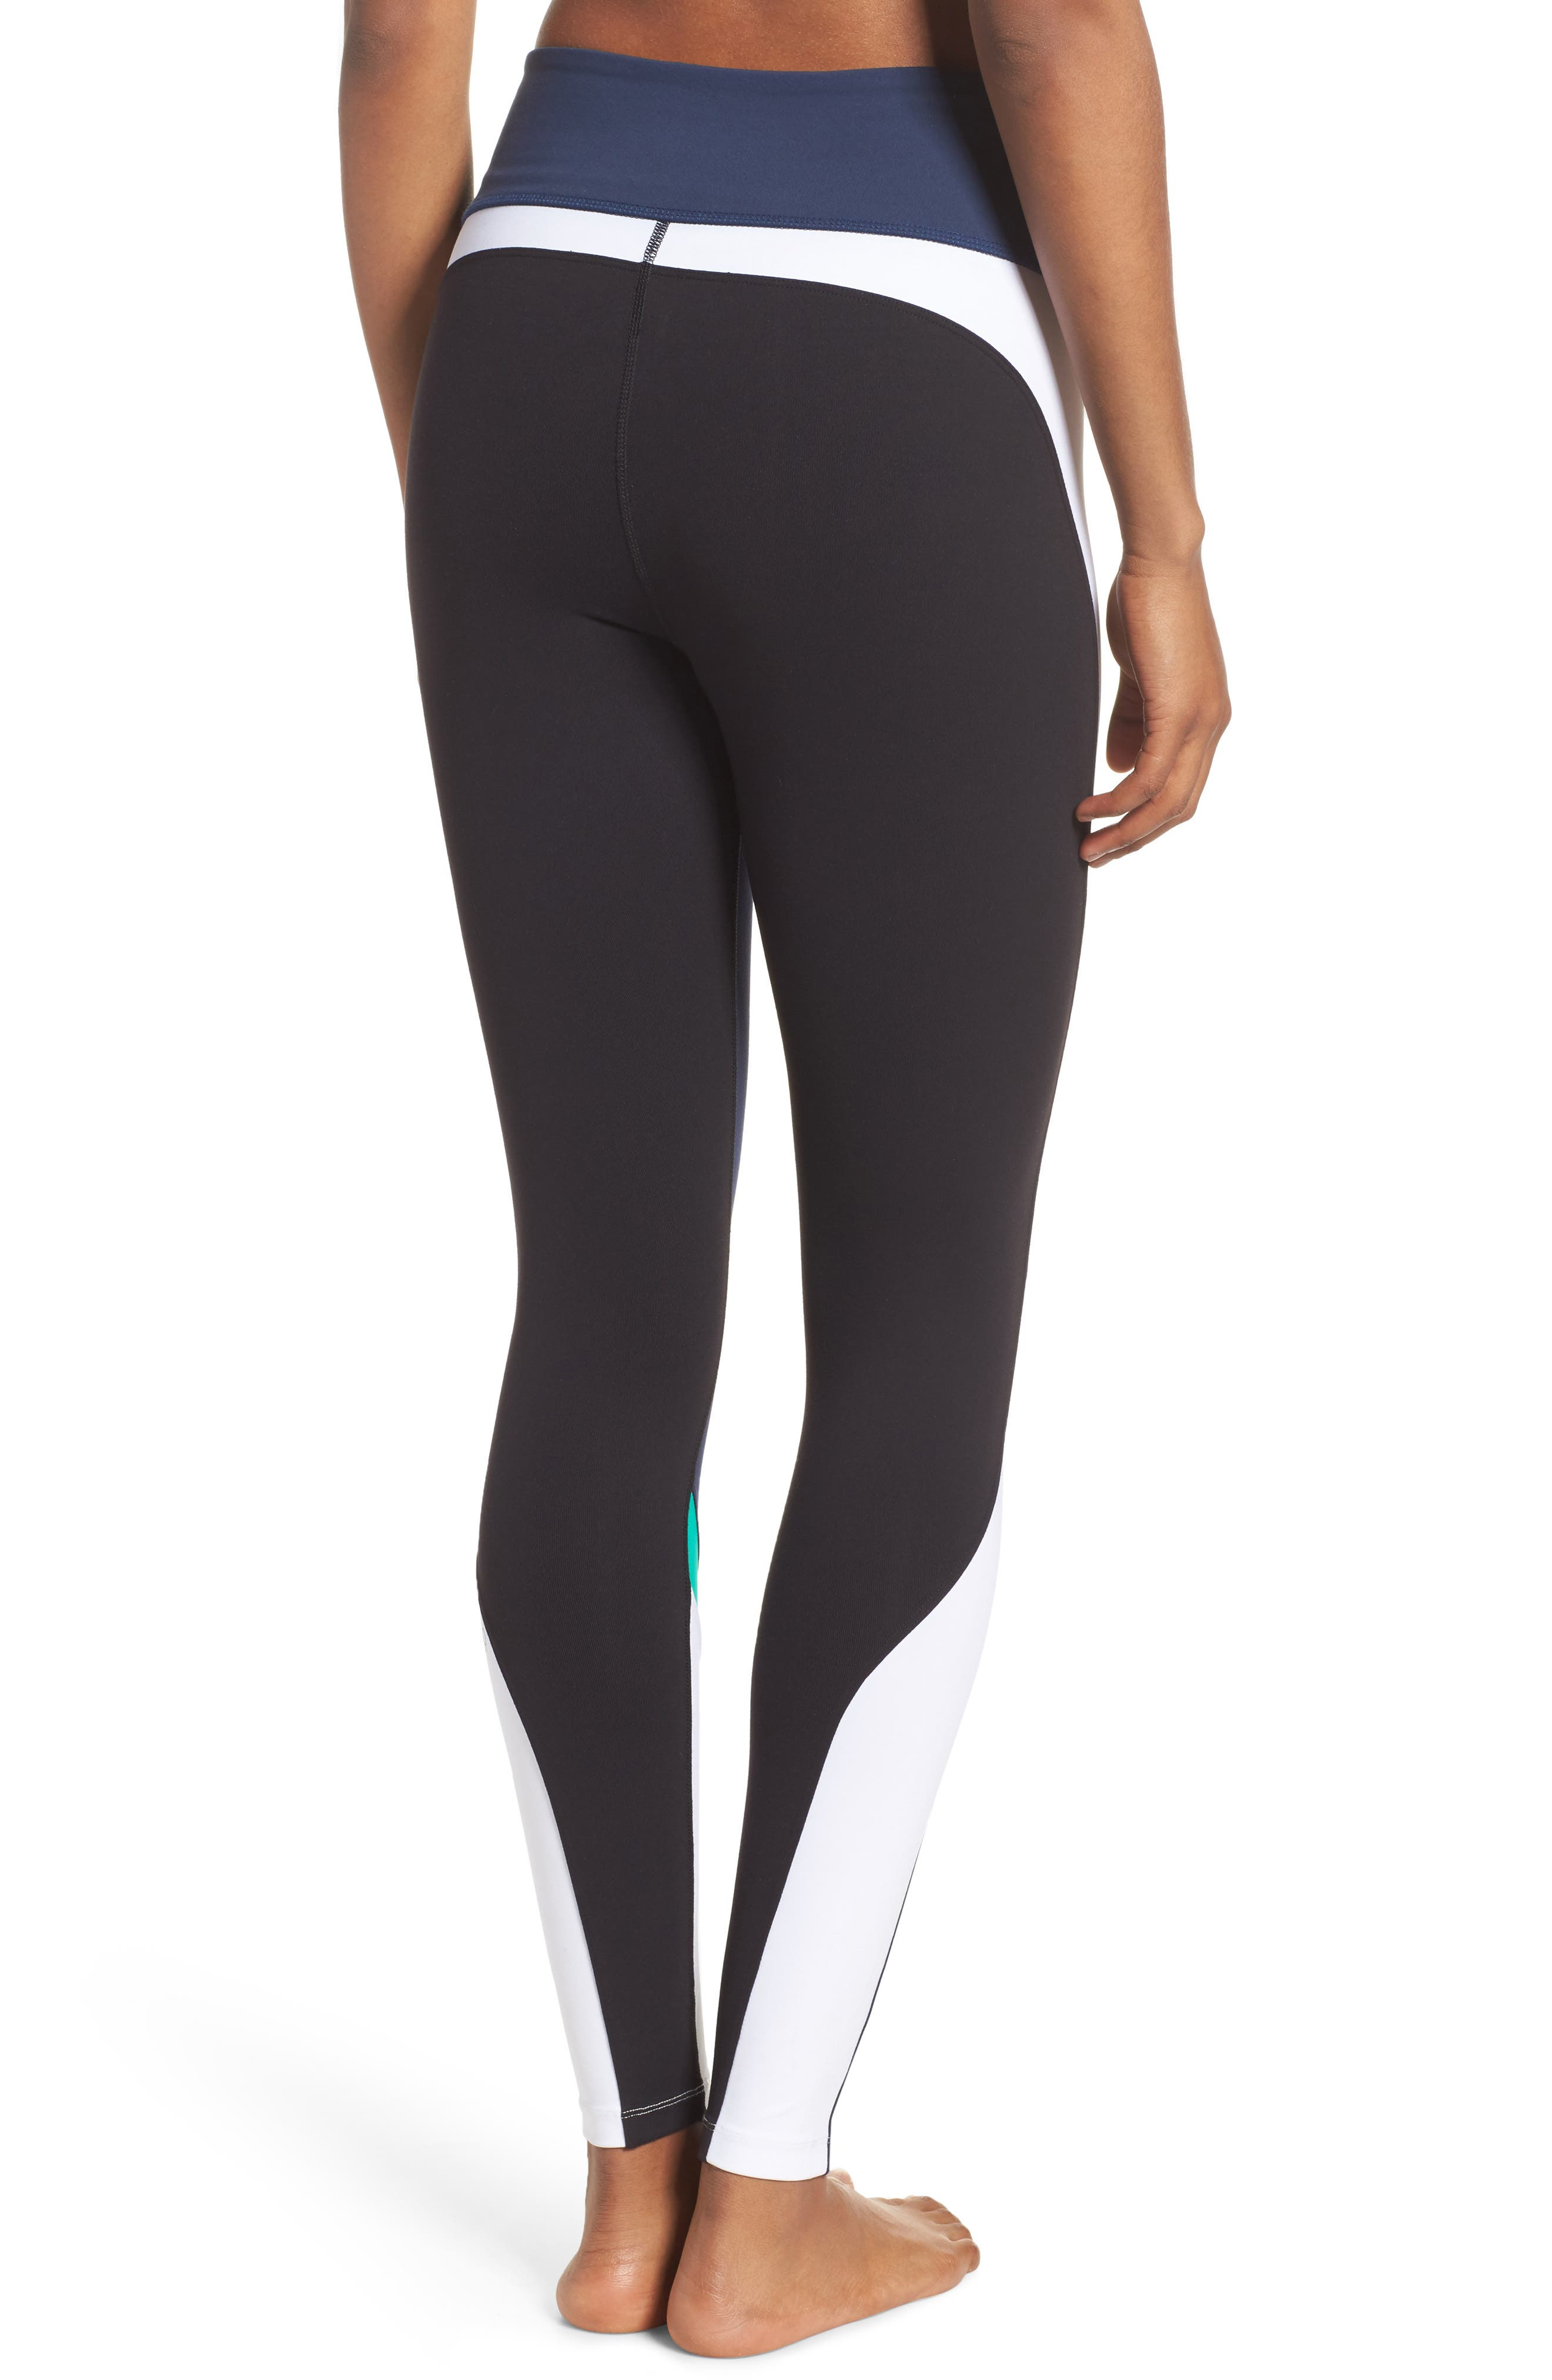 Force Ankle Tights,                             Alternate thumbnail 2, color,                             Navy/ Kelly/ White/ Black